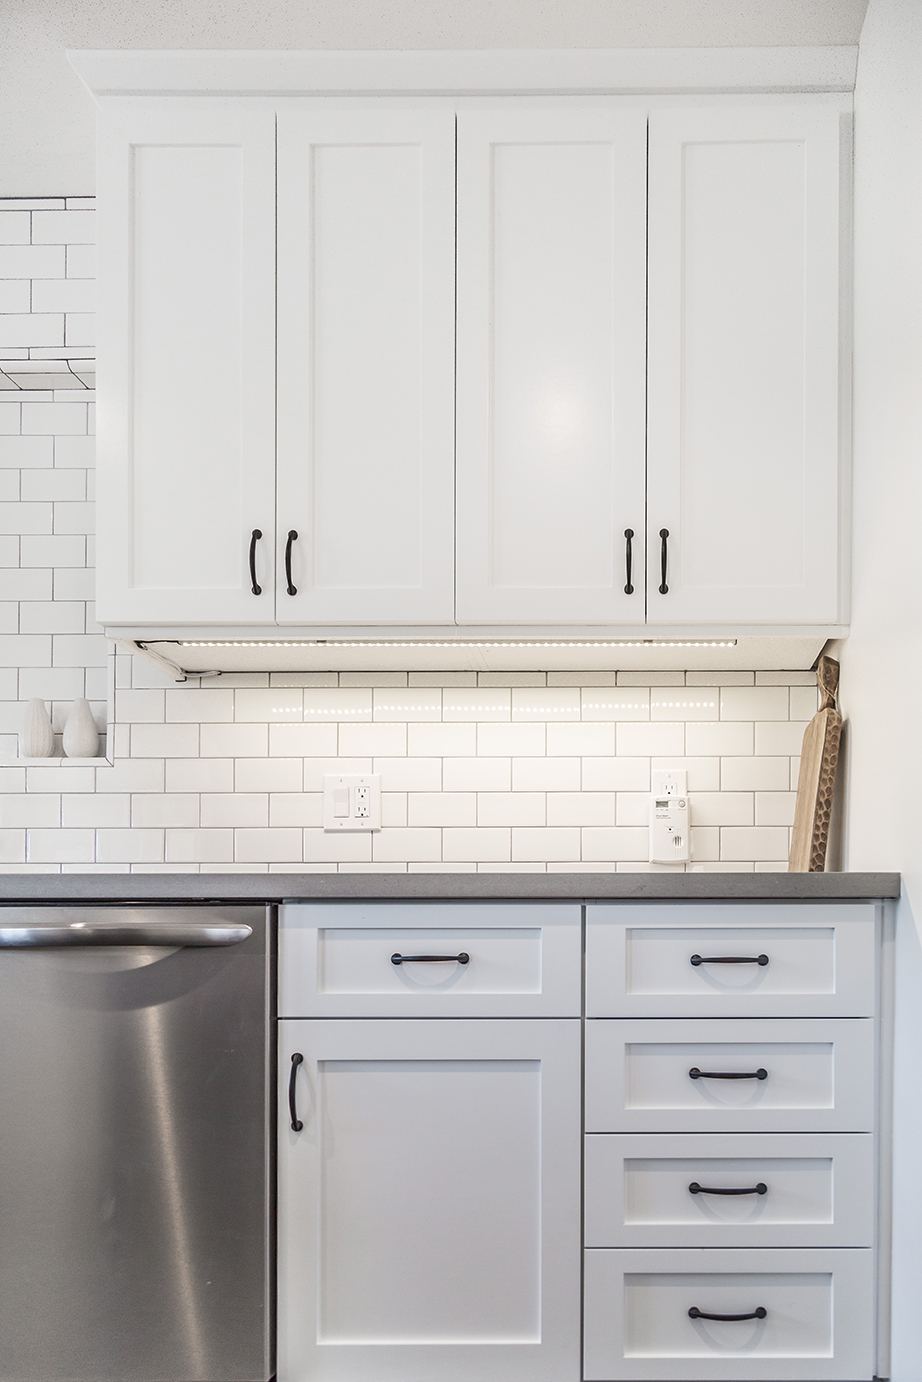 Shaker Style Cabinets by Cabinet Boy